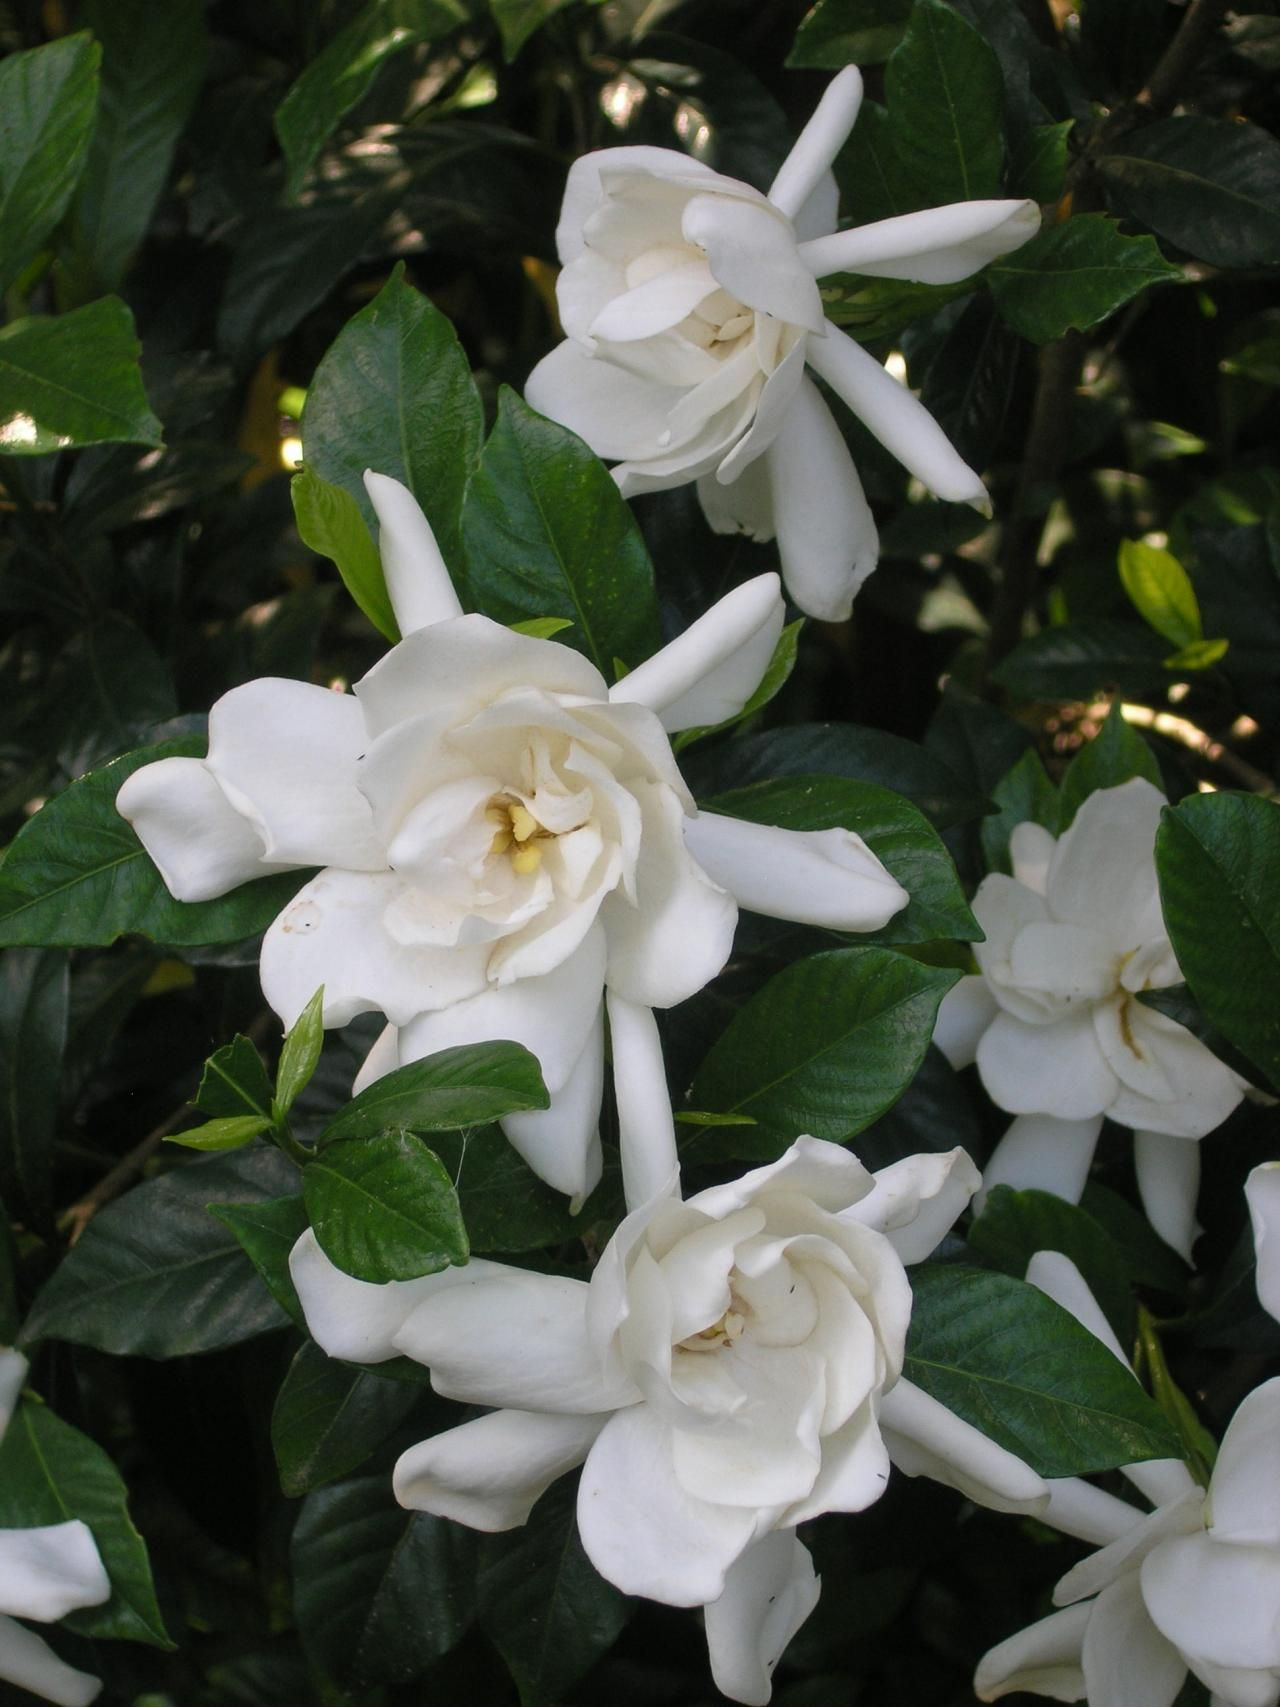 How To Grow And Care For Gardenia Plants With Images Growing